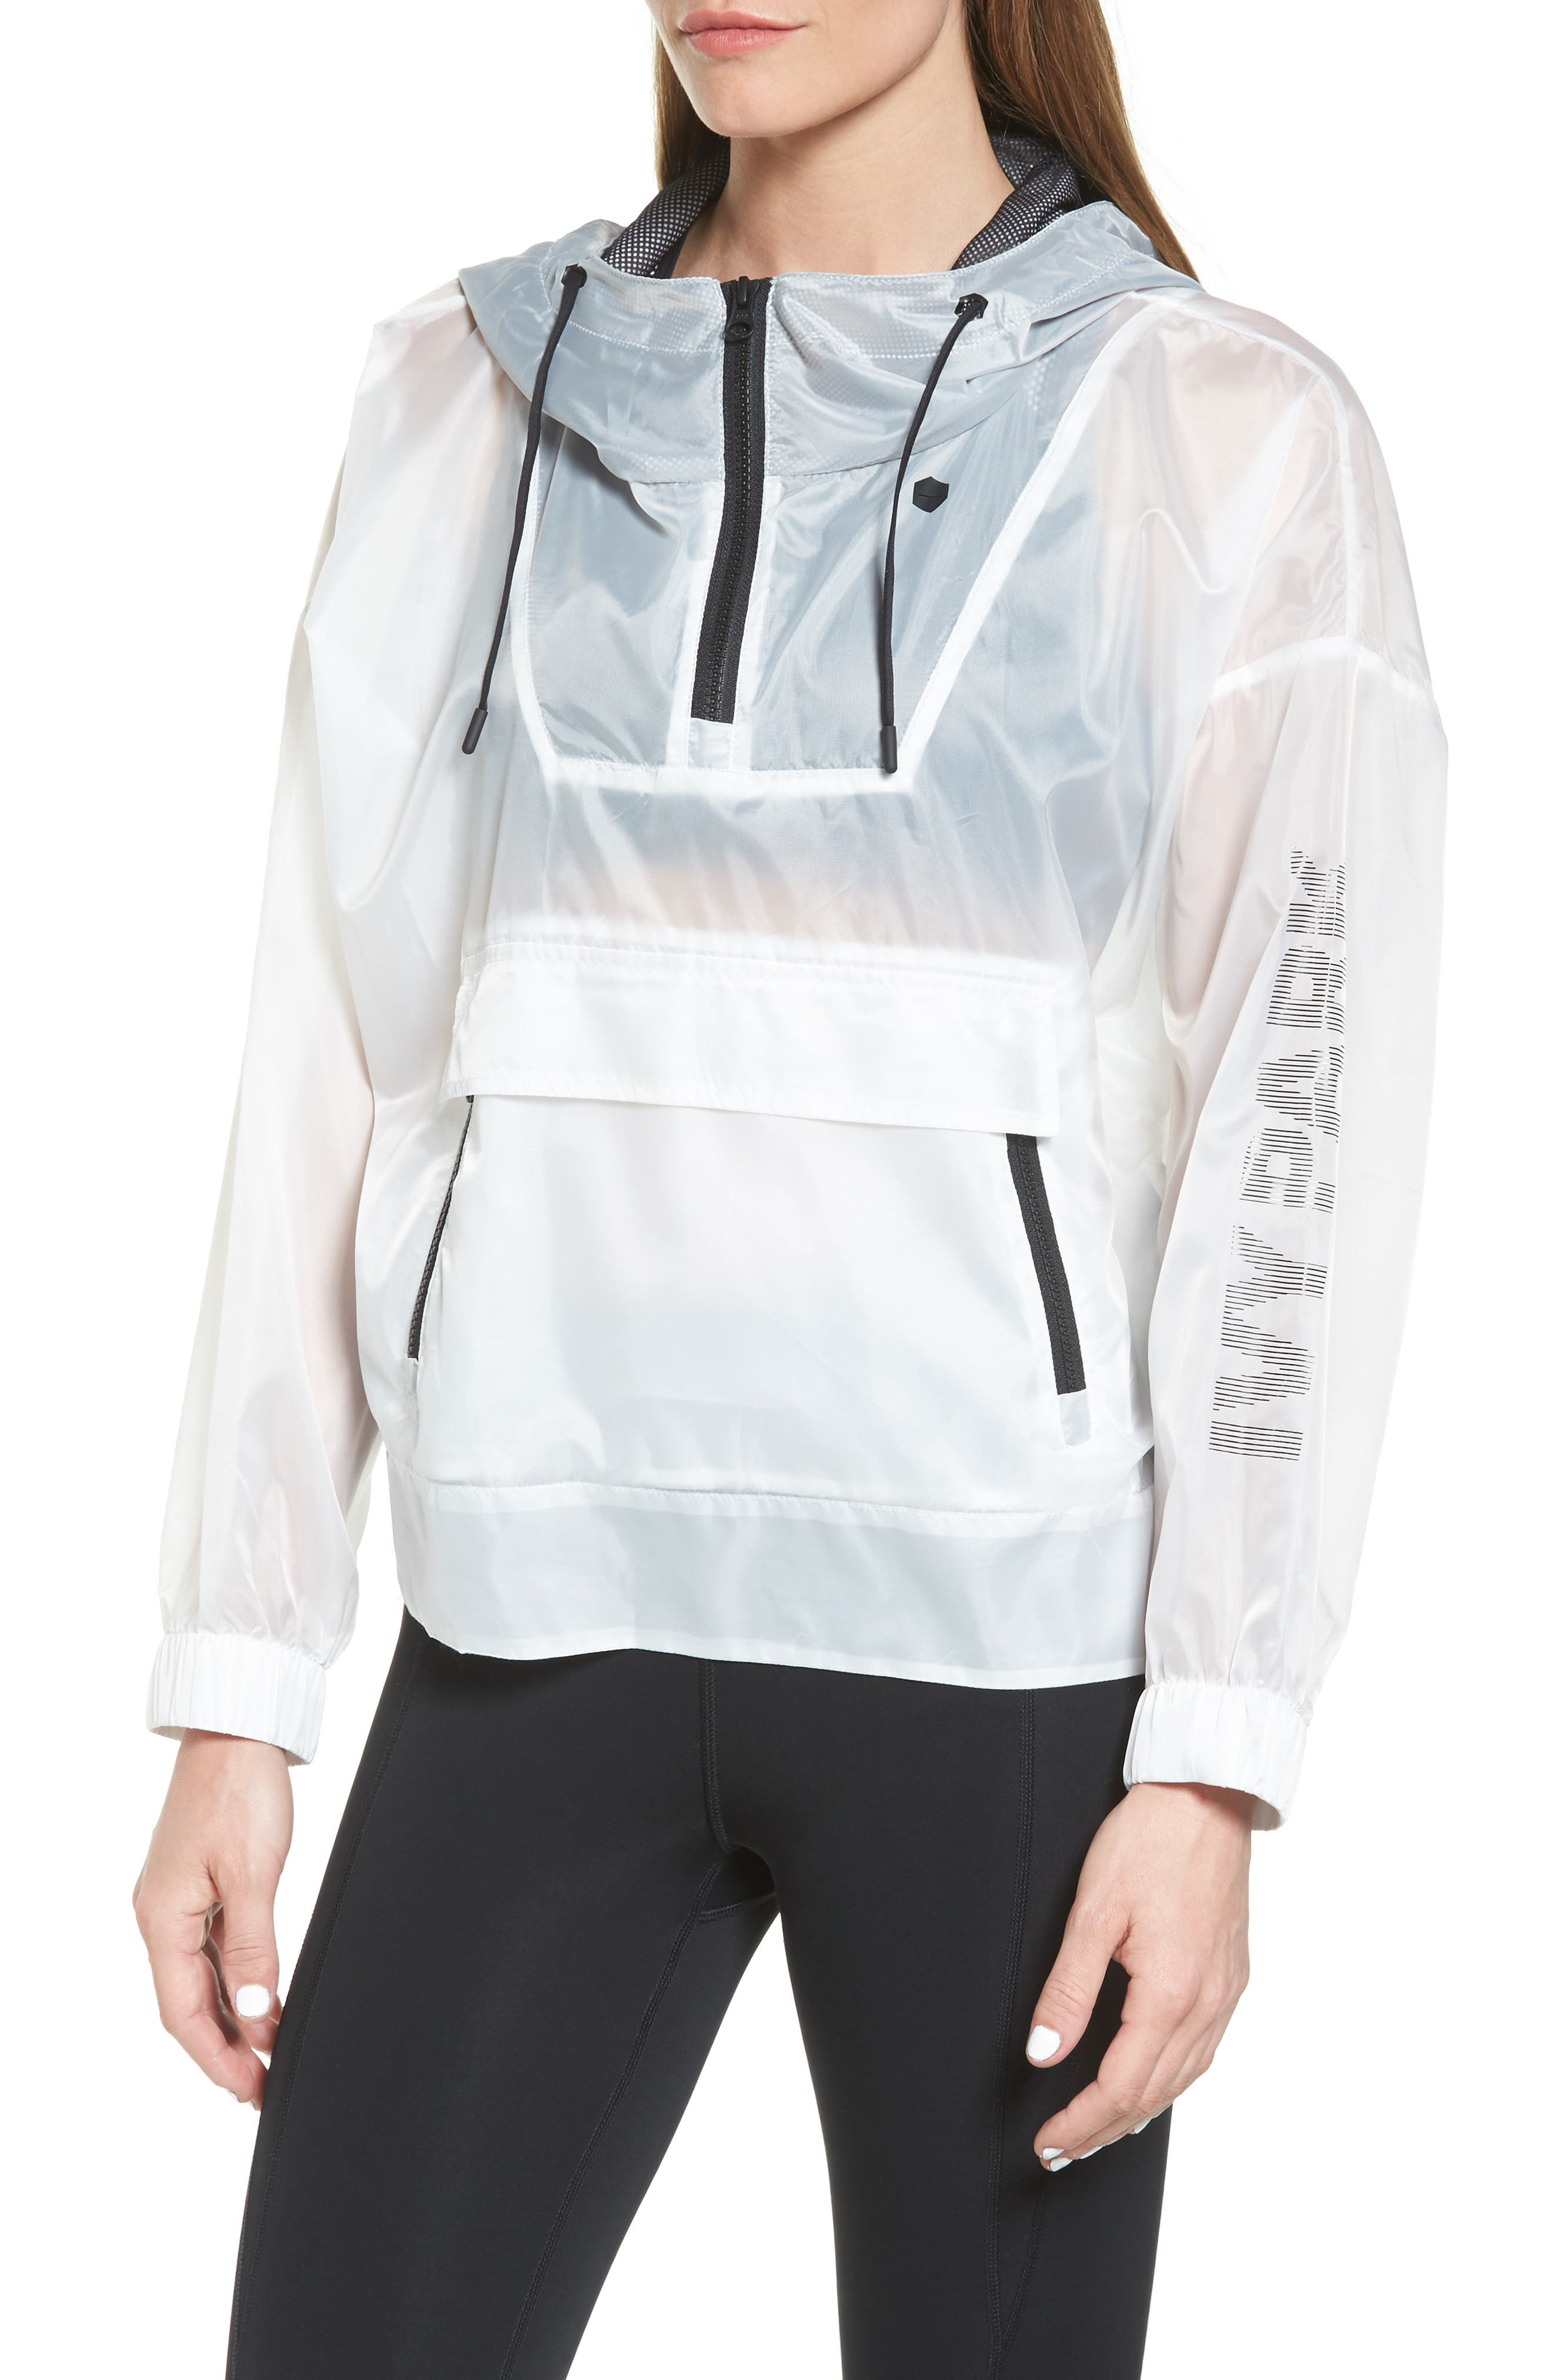 IVY PARK® Translucent Windbreaker